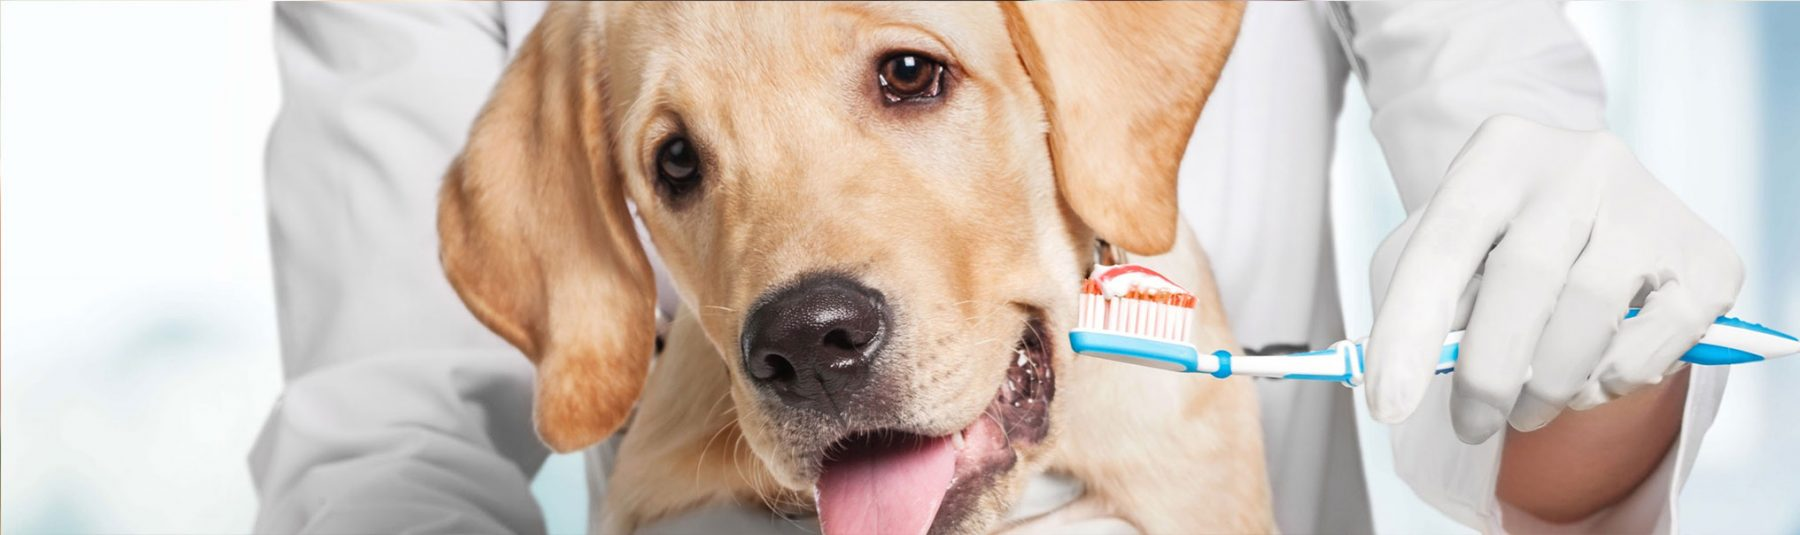 dog-dental-service